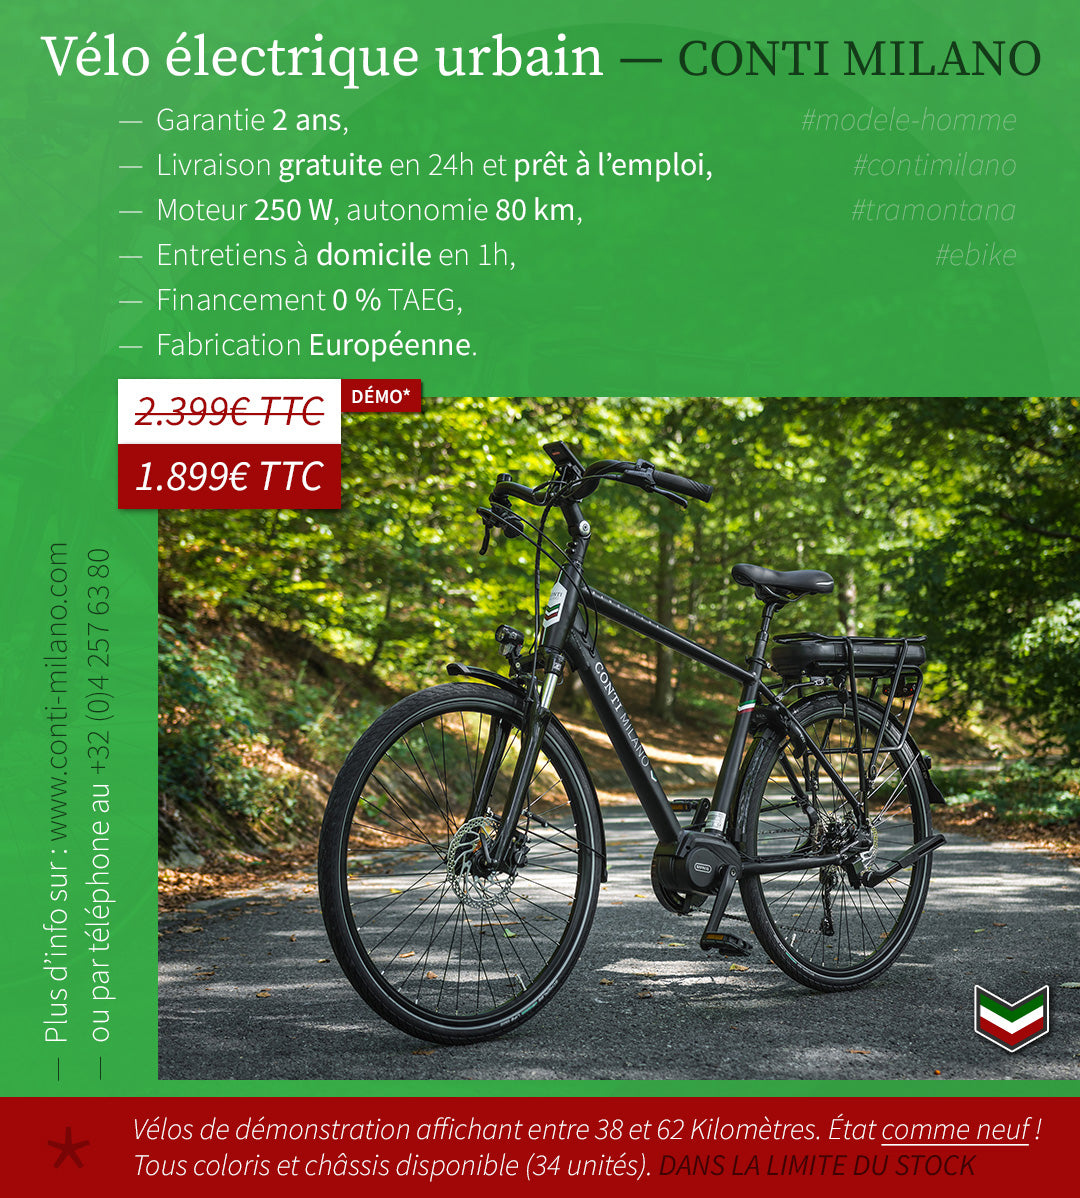 Conti Milano Ebike visuel homme - demonstration